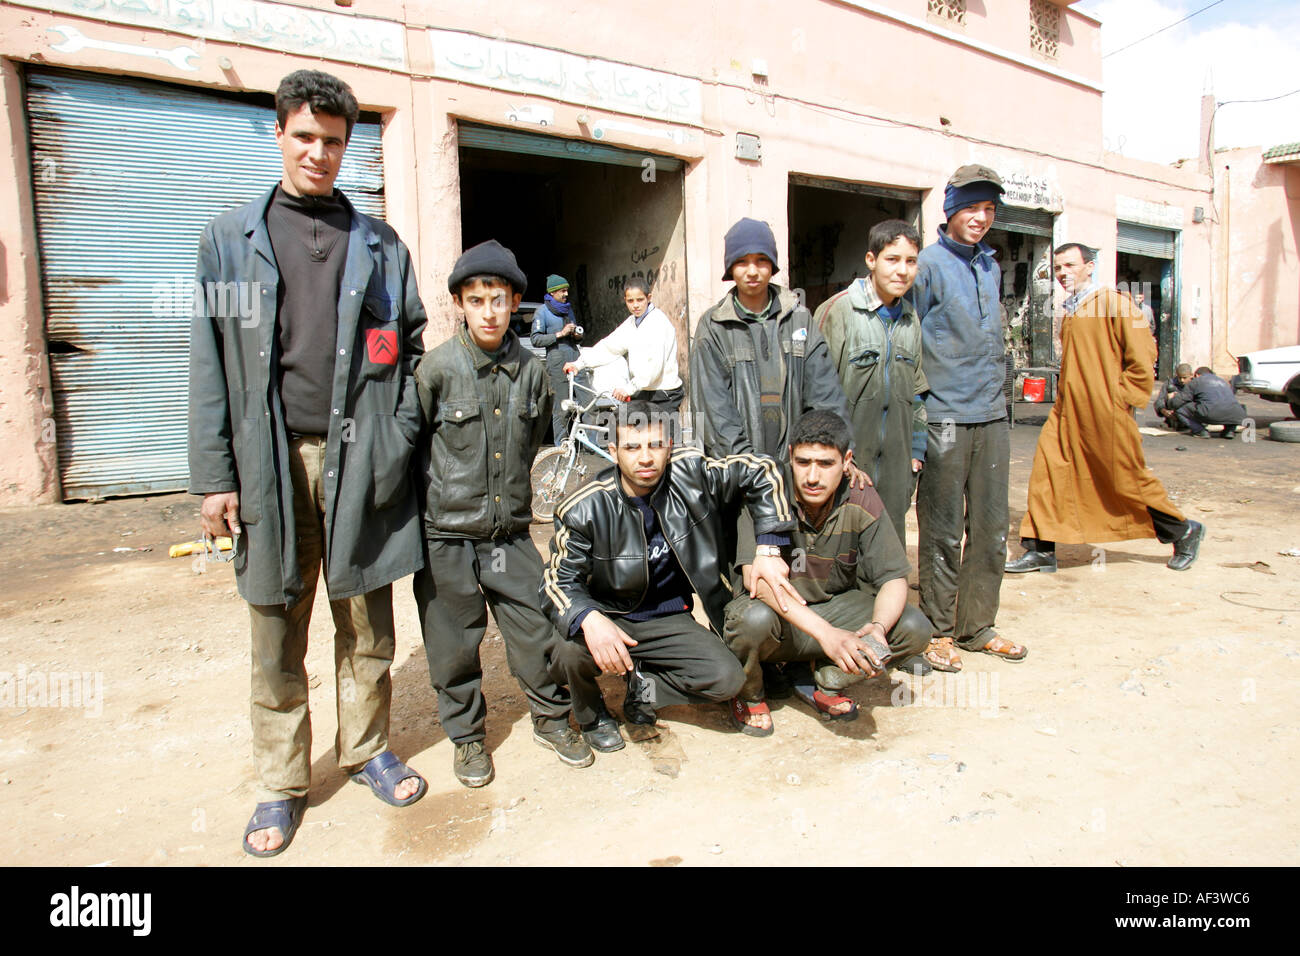 the staff of mechanics of a garage in western sahara occupied by morocco - Stock Image